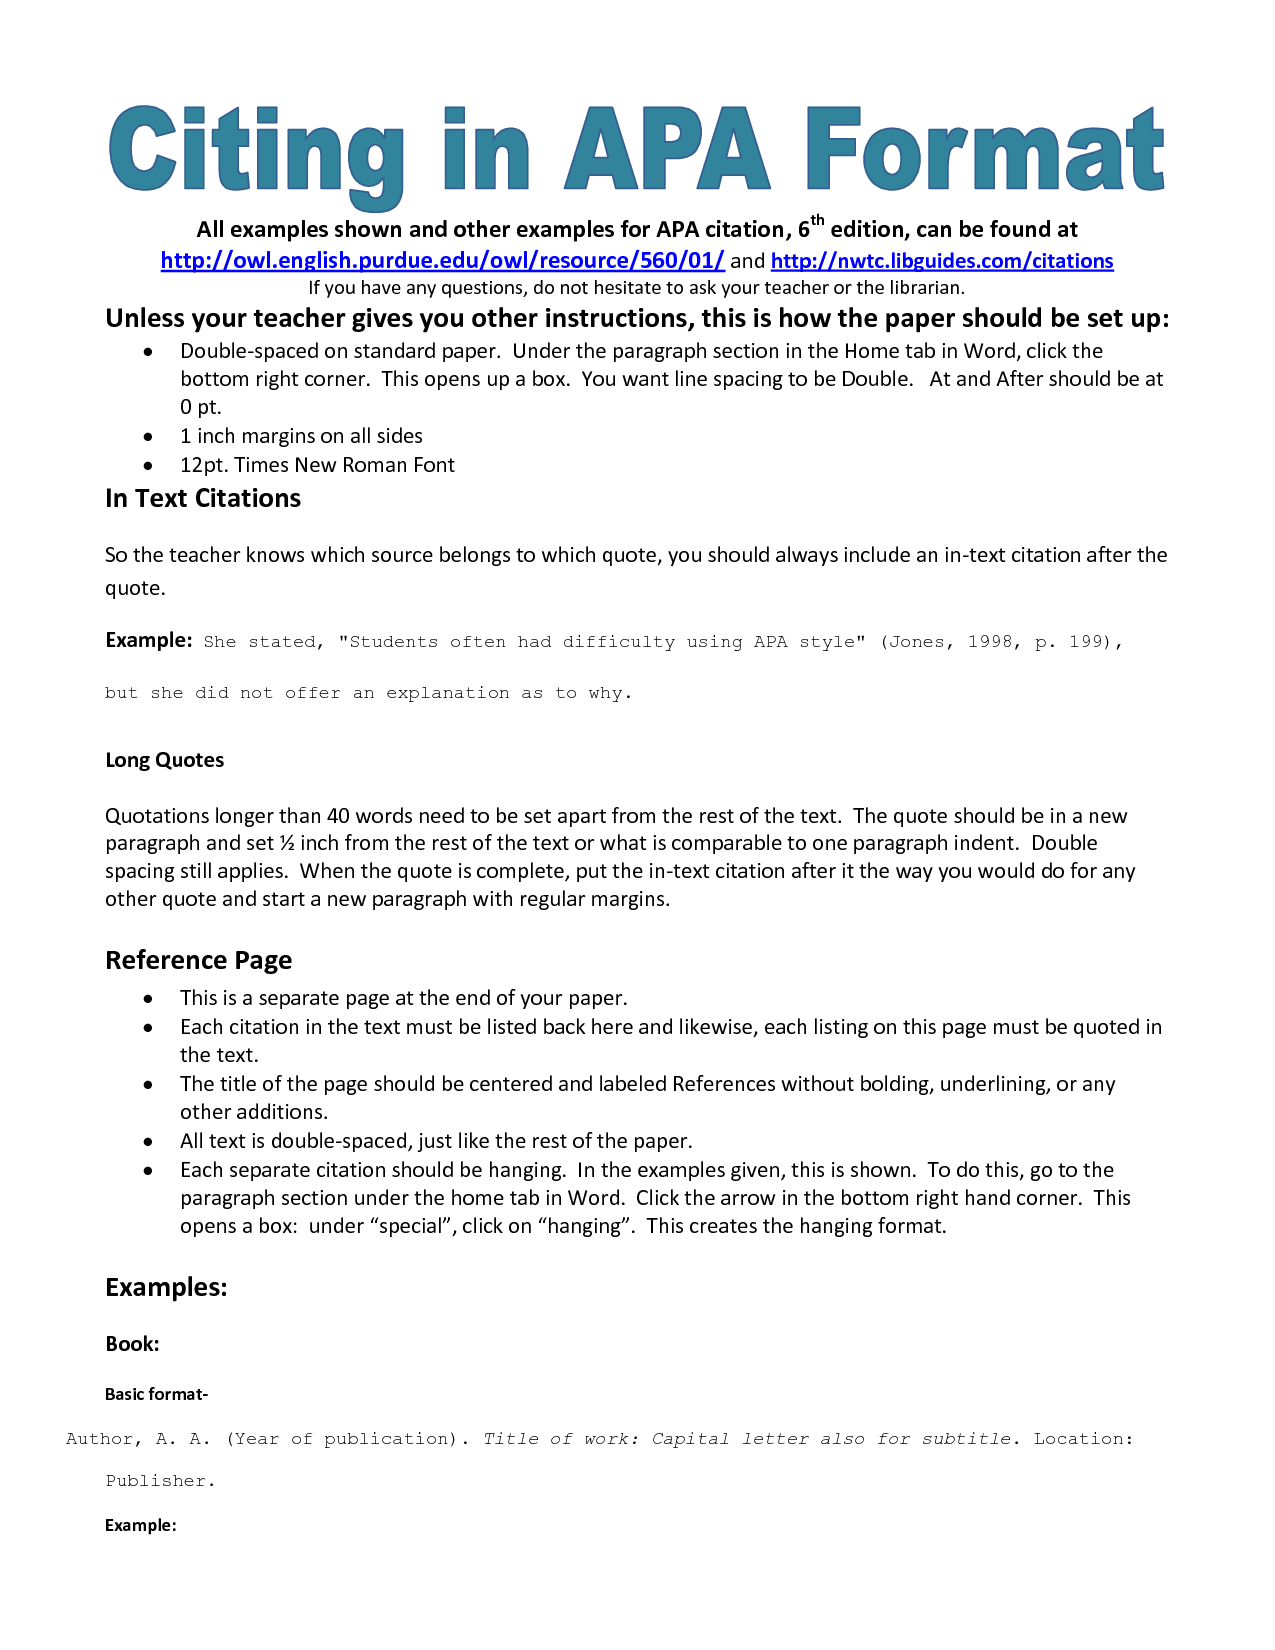 001 Apa Citation Research Paper Format Remarkable Style Model Full